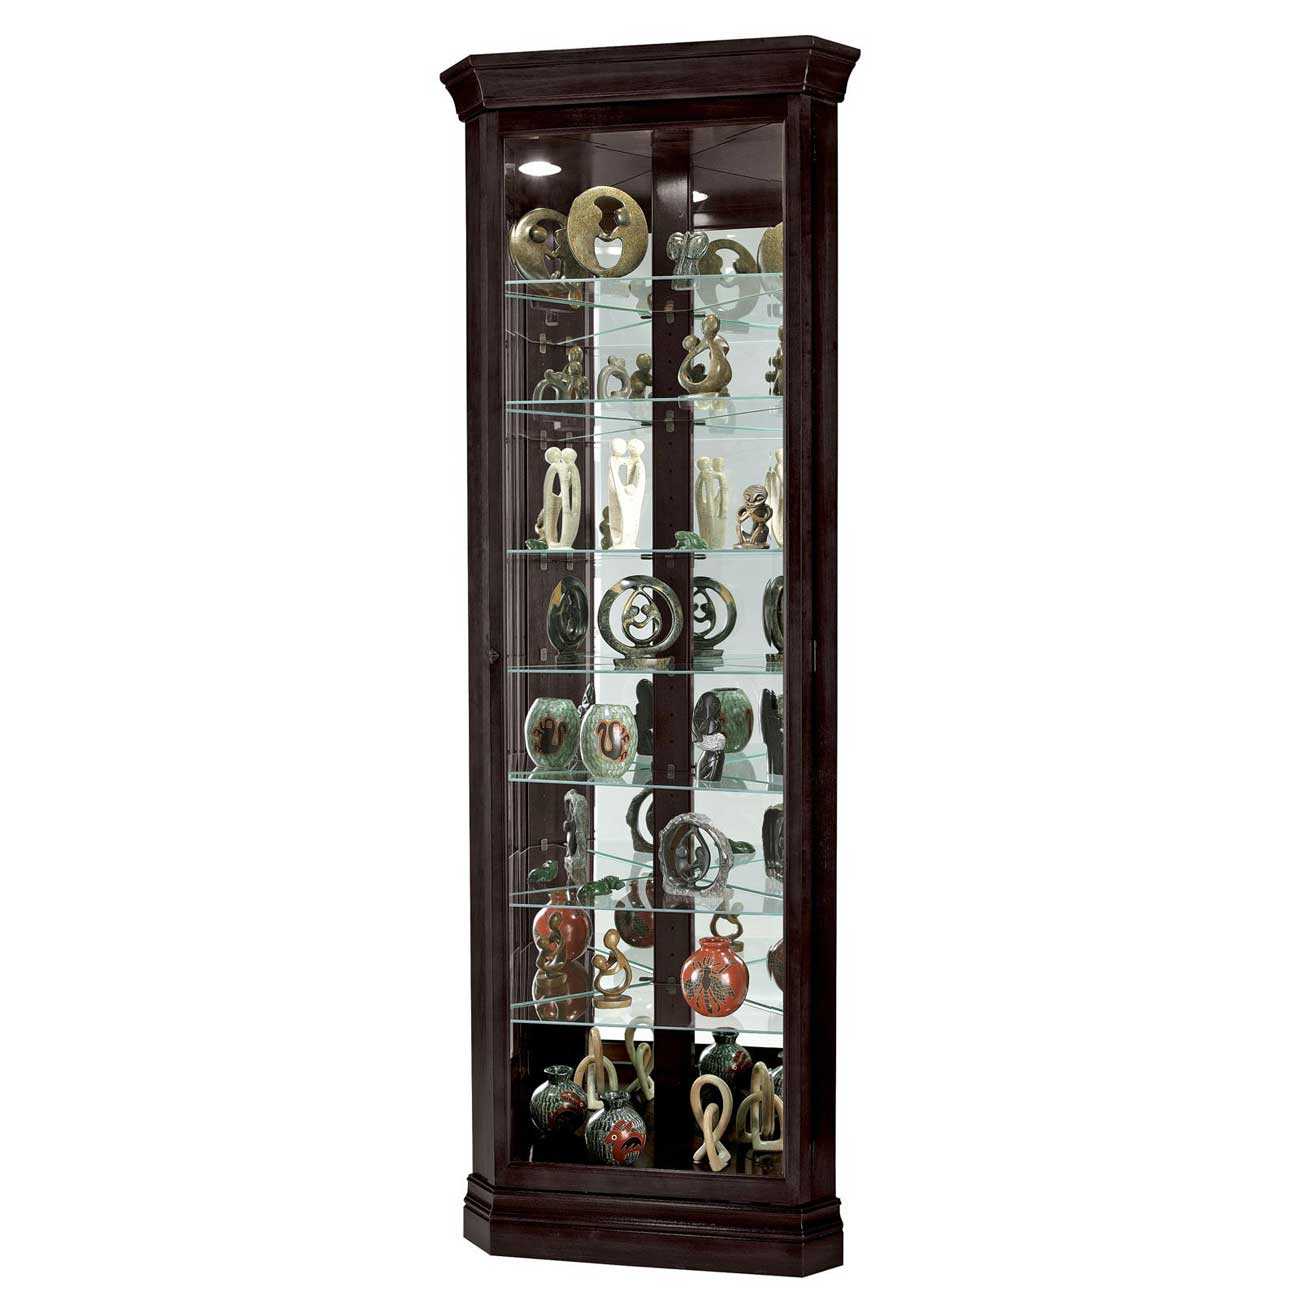 Duane black corner curio cabinet from Howard Miller